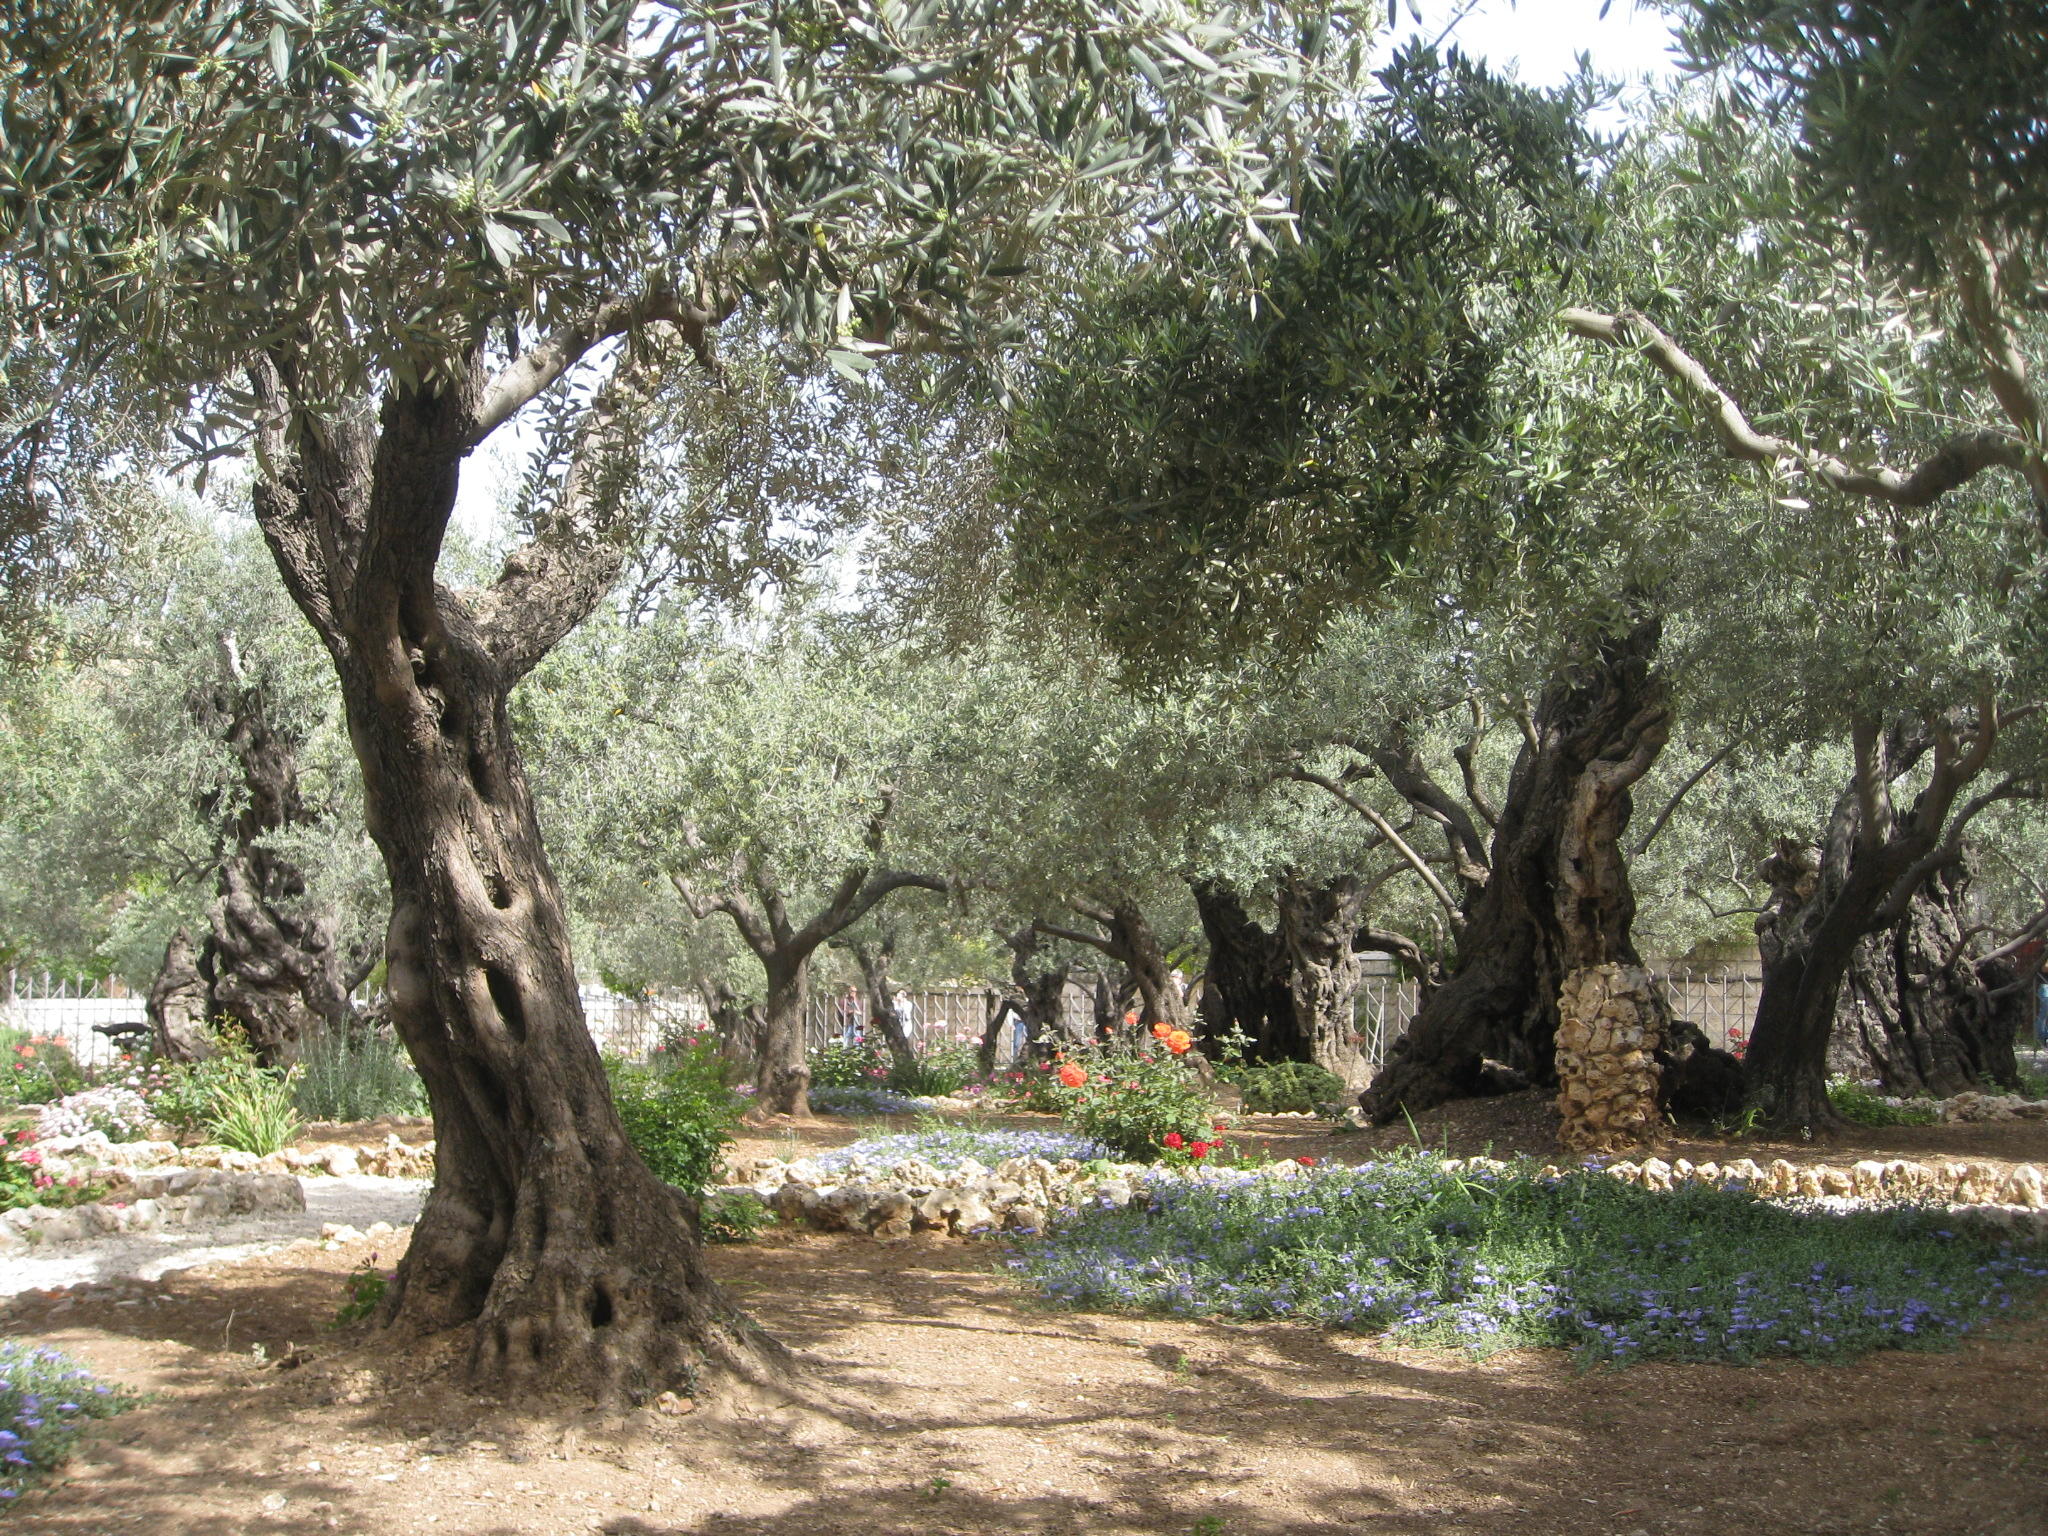 Garden Of Gethsemane Olive Trees And Garden Byu New